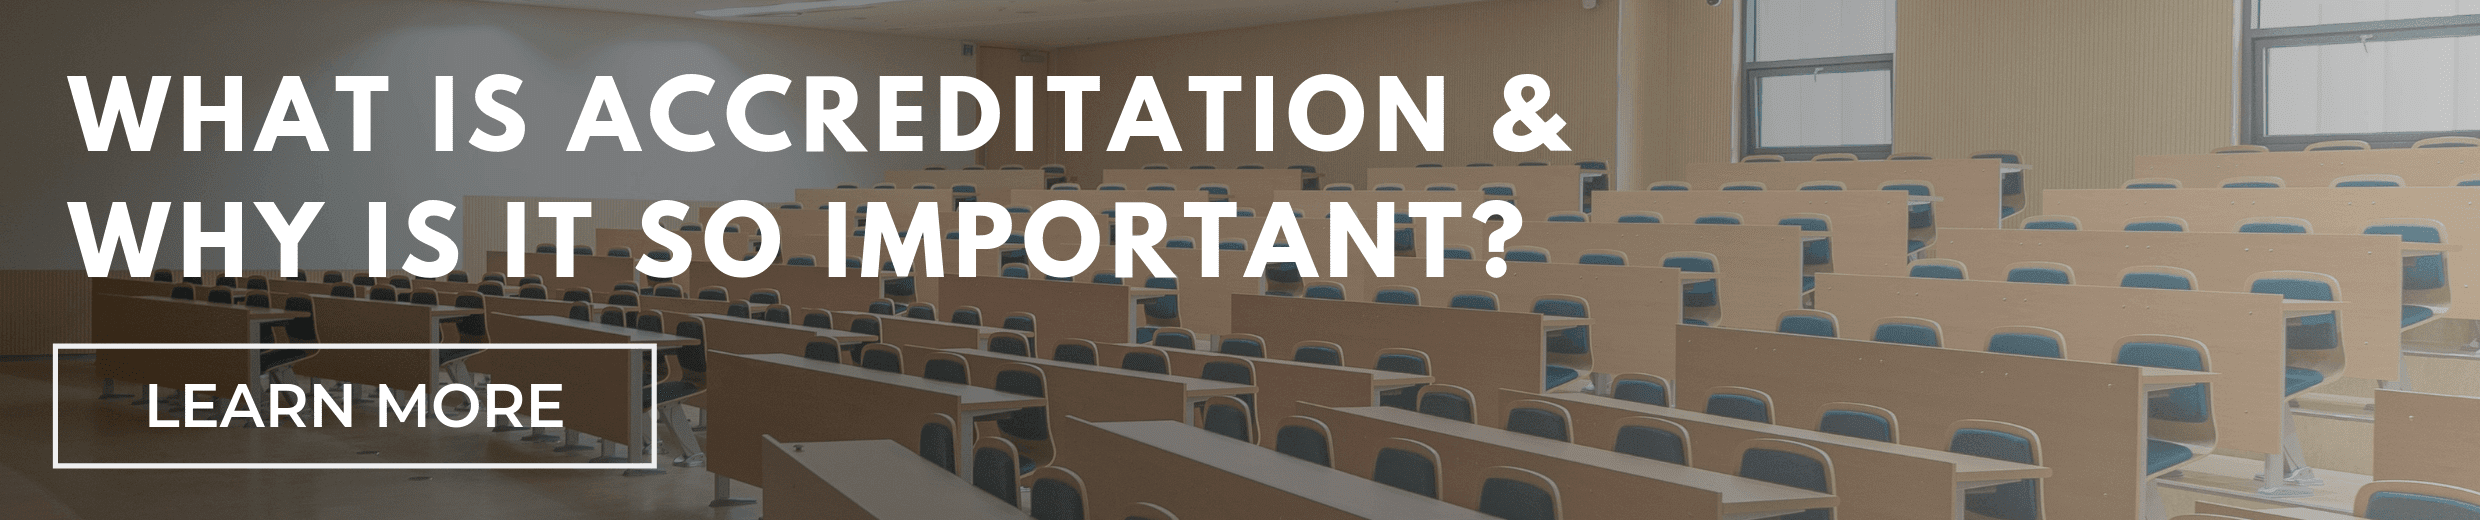 What is Accreditation and Why is it So Important?